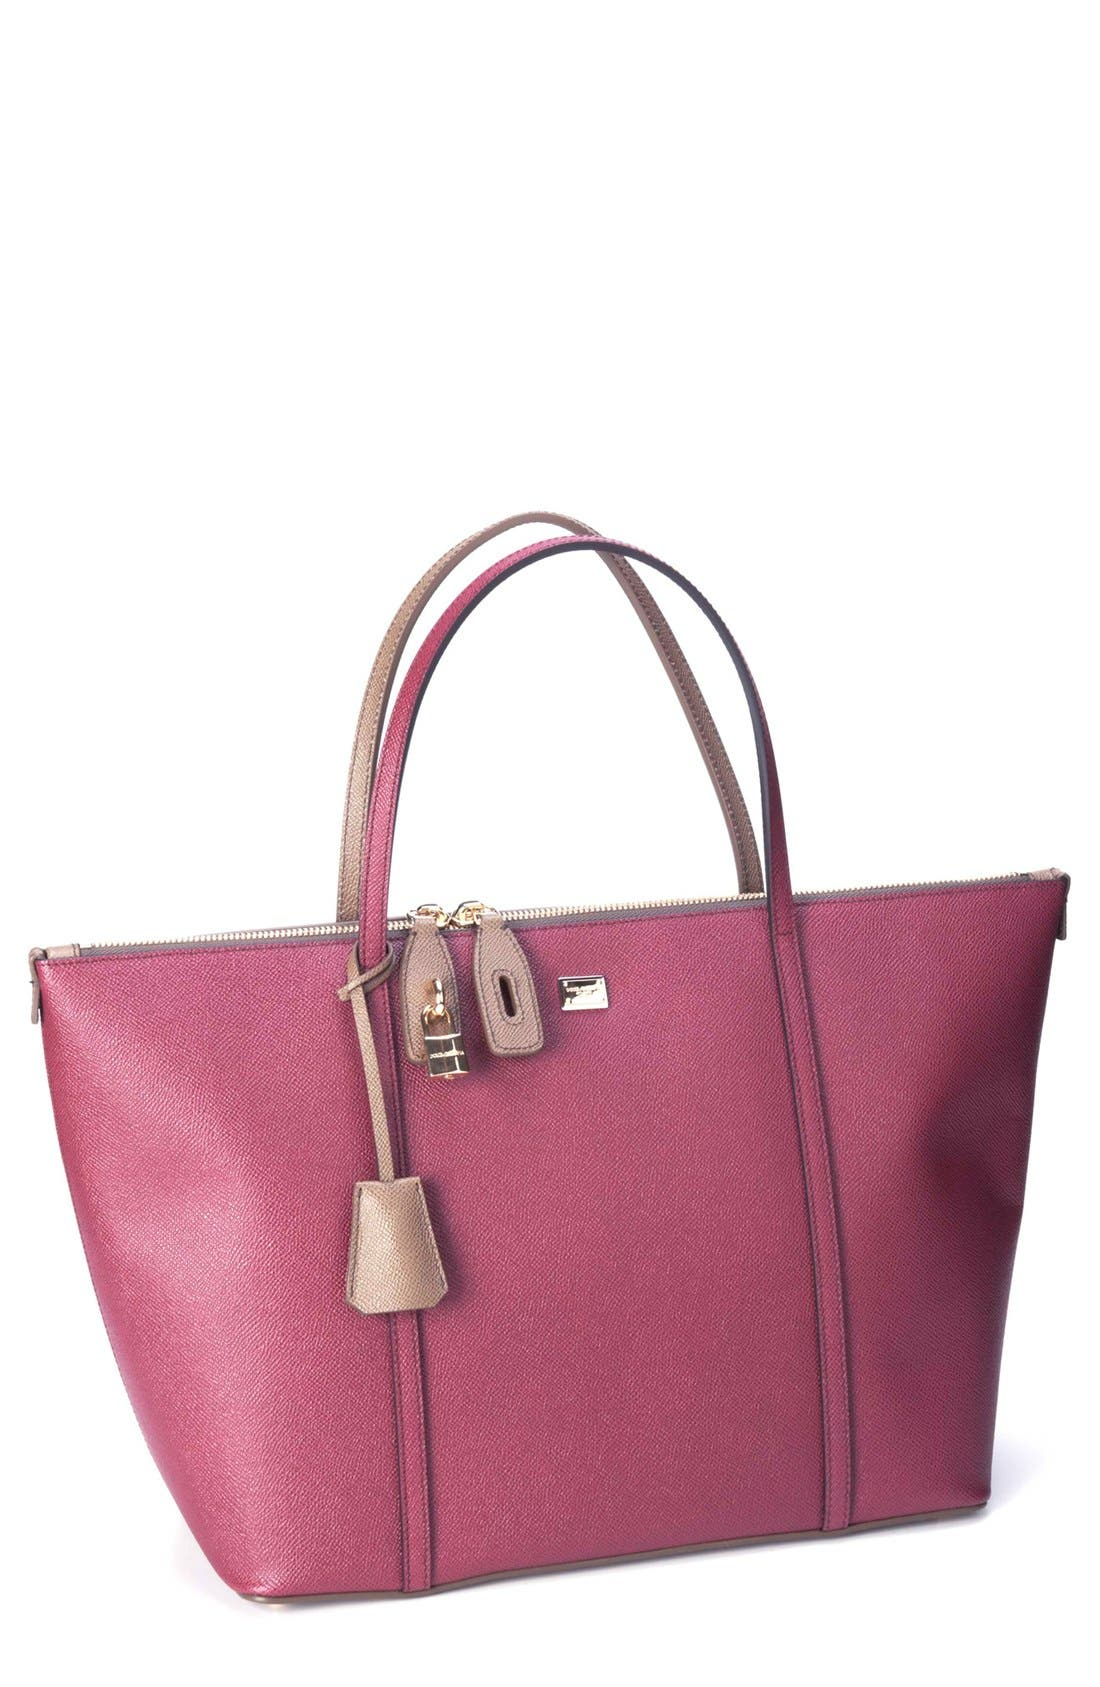 Alternate Image 1 Selected - Dolce&Gabbana 'Miss Escape' Leather Tote